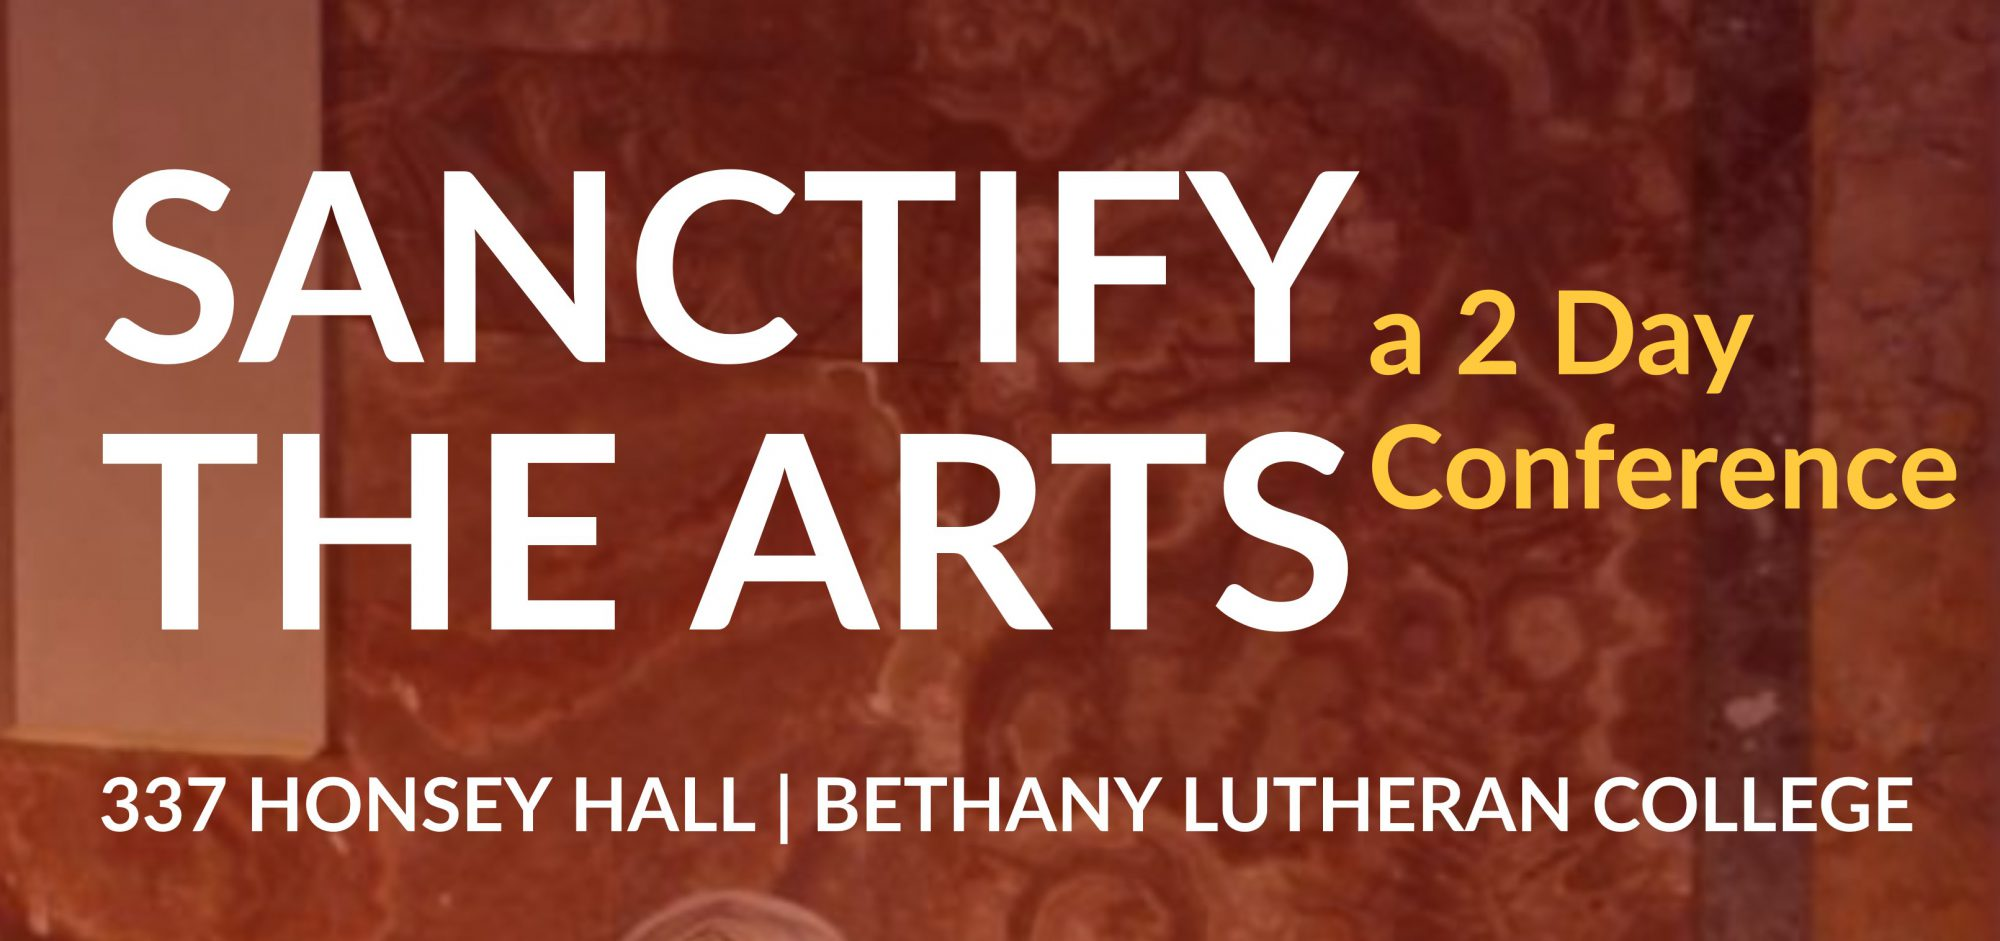 Sanctify the Arts - BLC News & Events